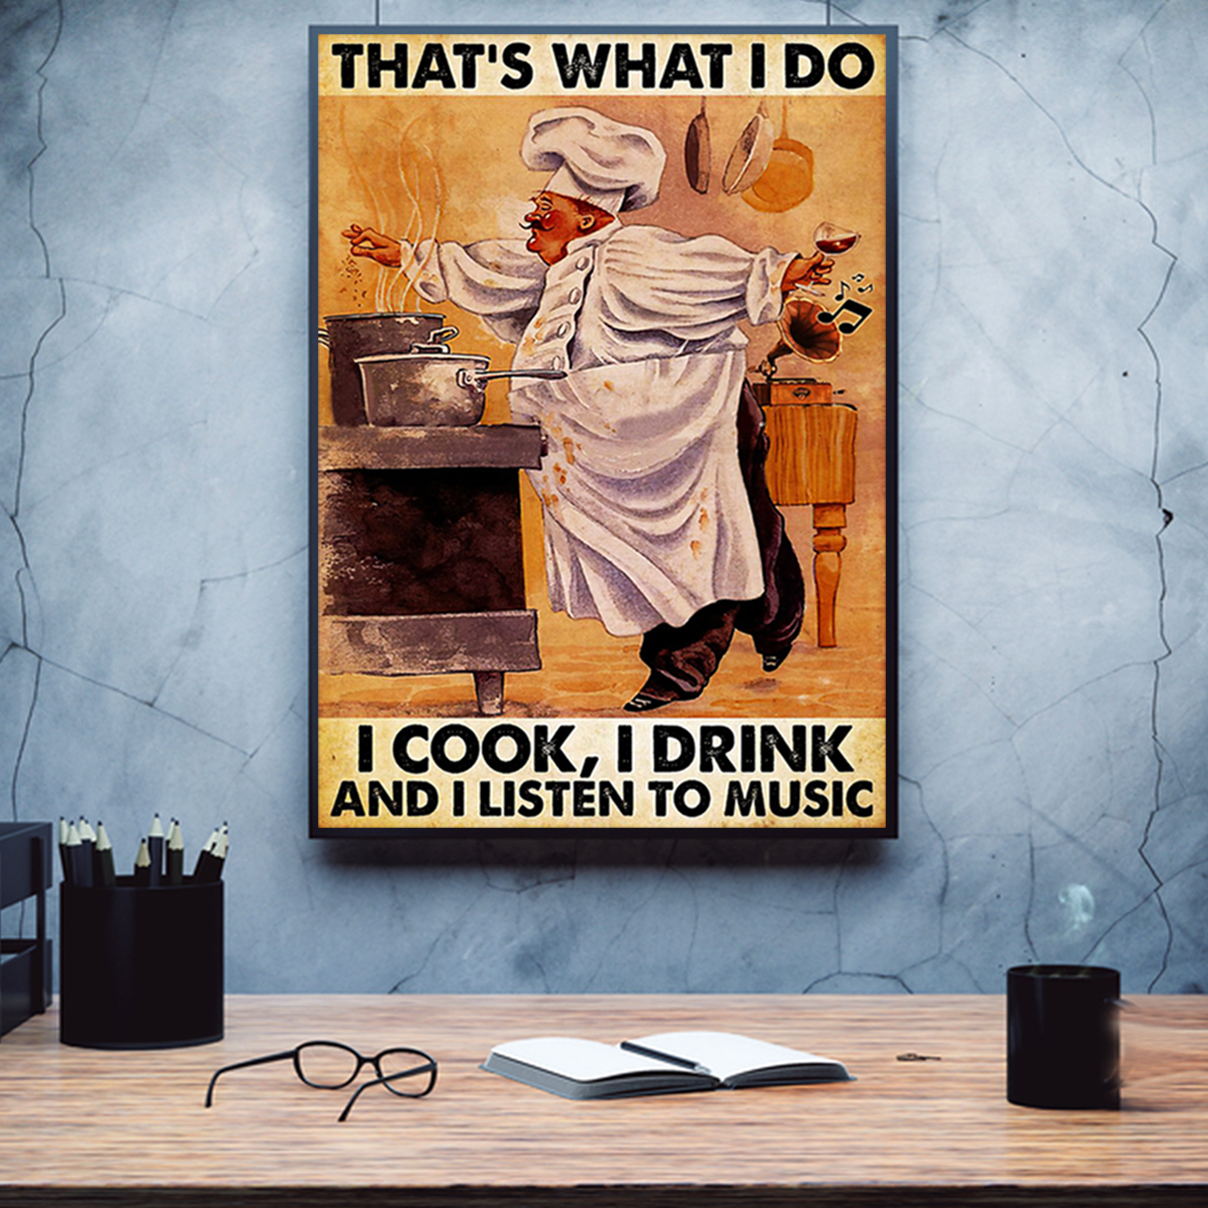 Chef that's what I do I cook I drink and listen to music poster A1